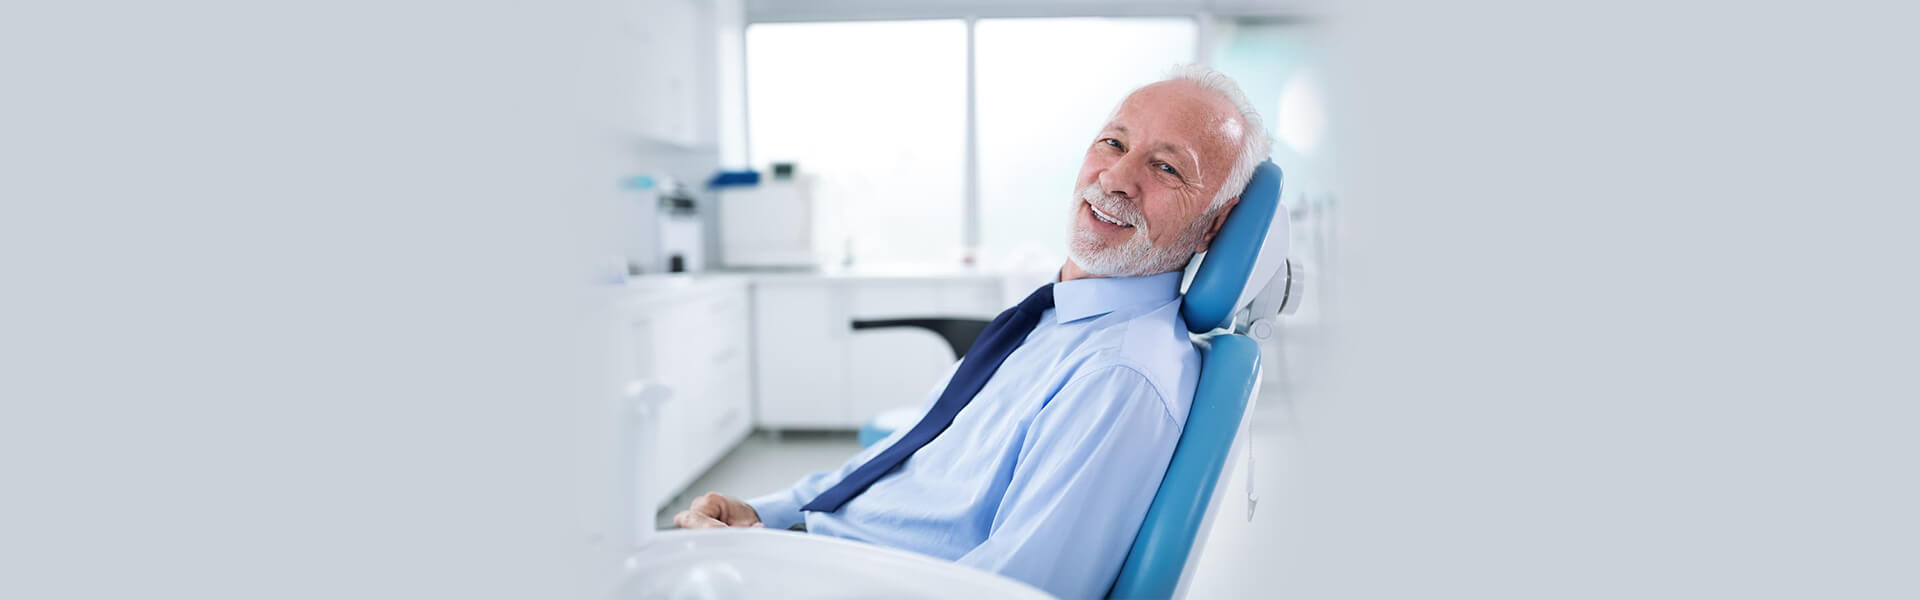 Root Canals (Endodontic) Treatments in Boca Raton